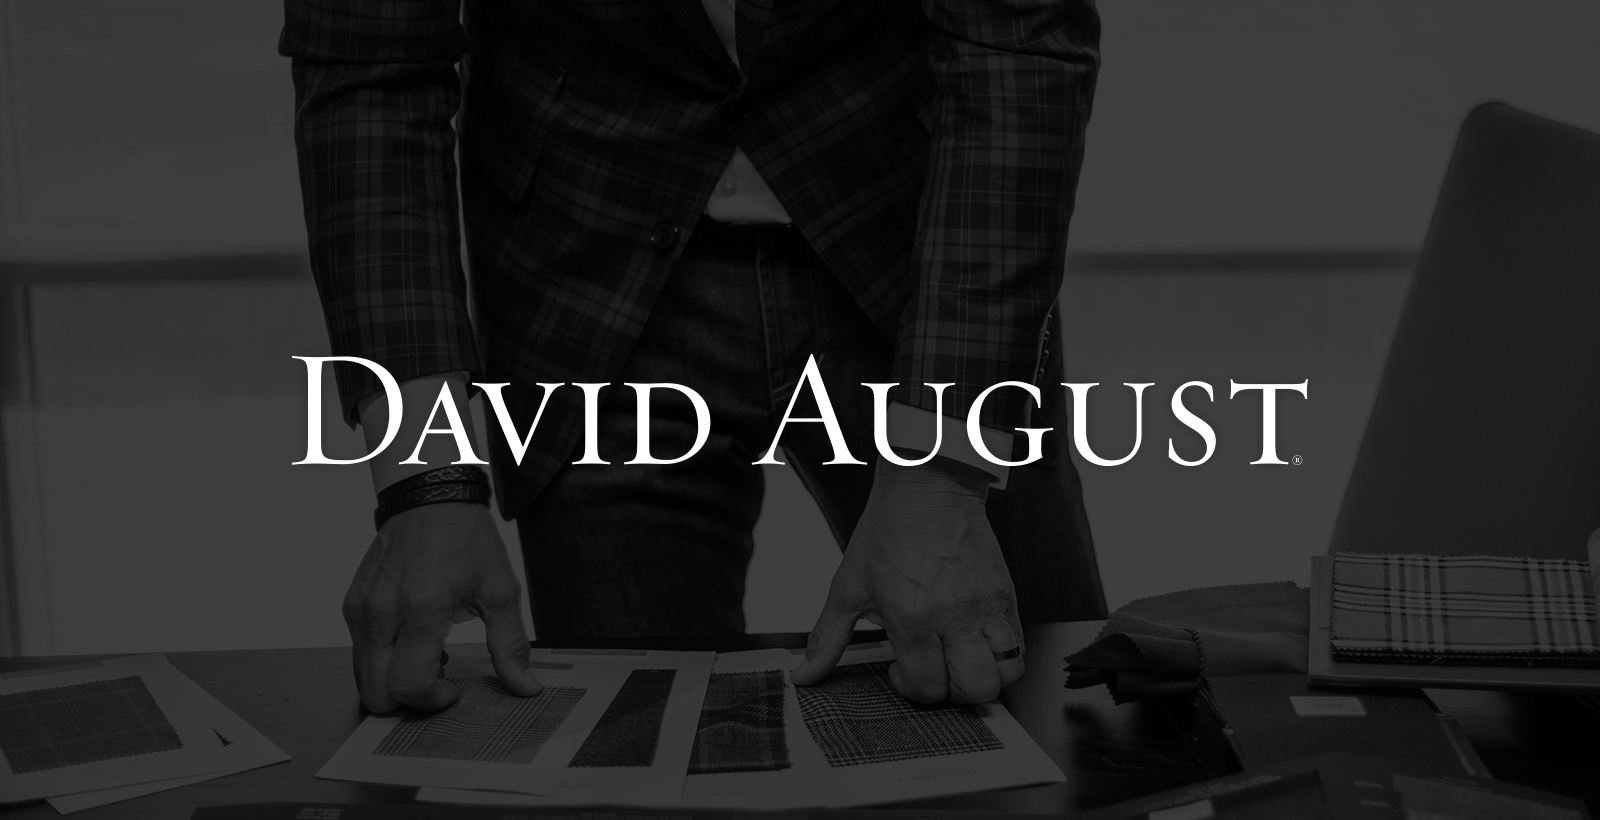 david august logo refresh primary logo design